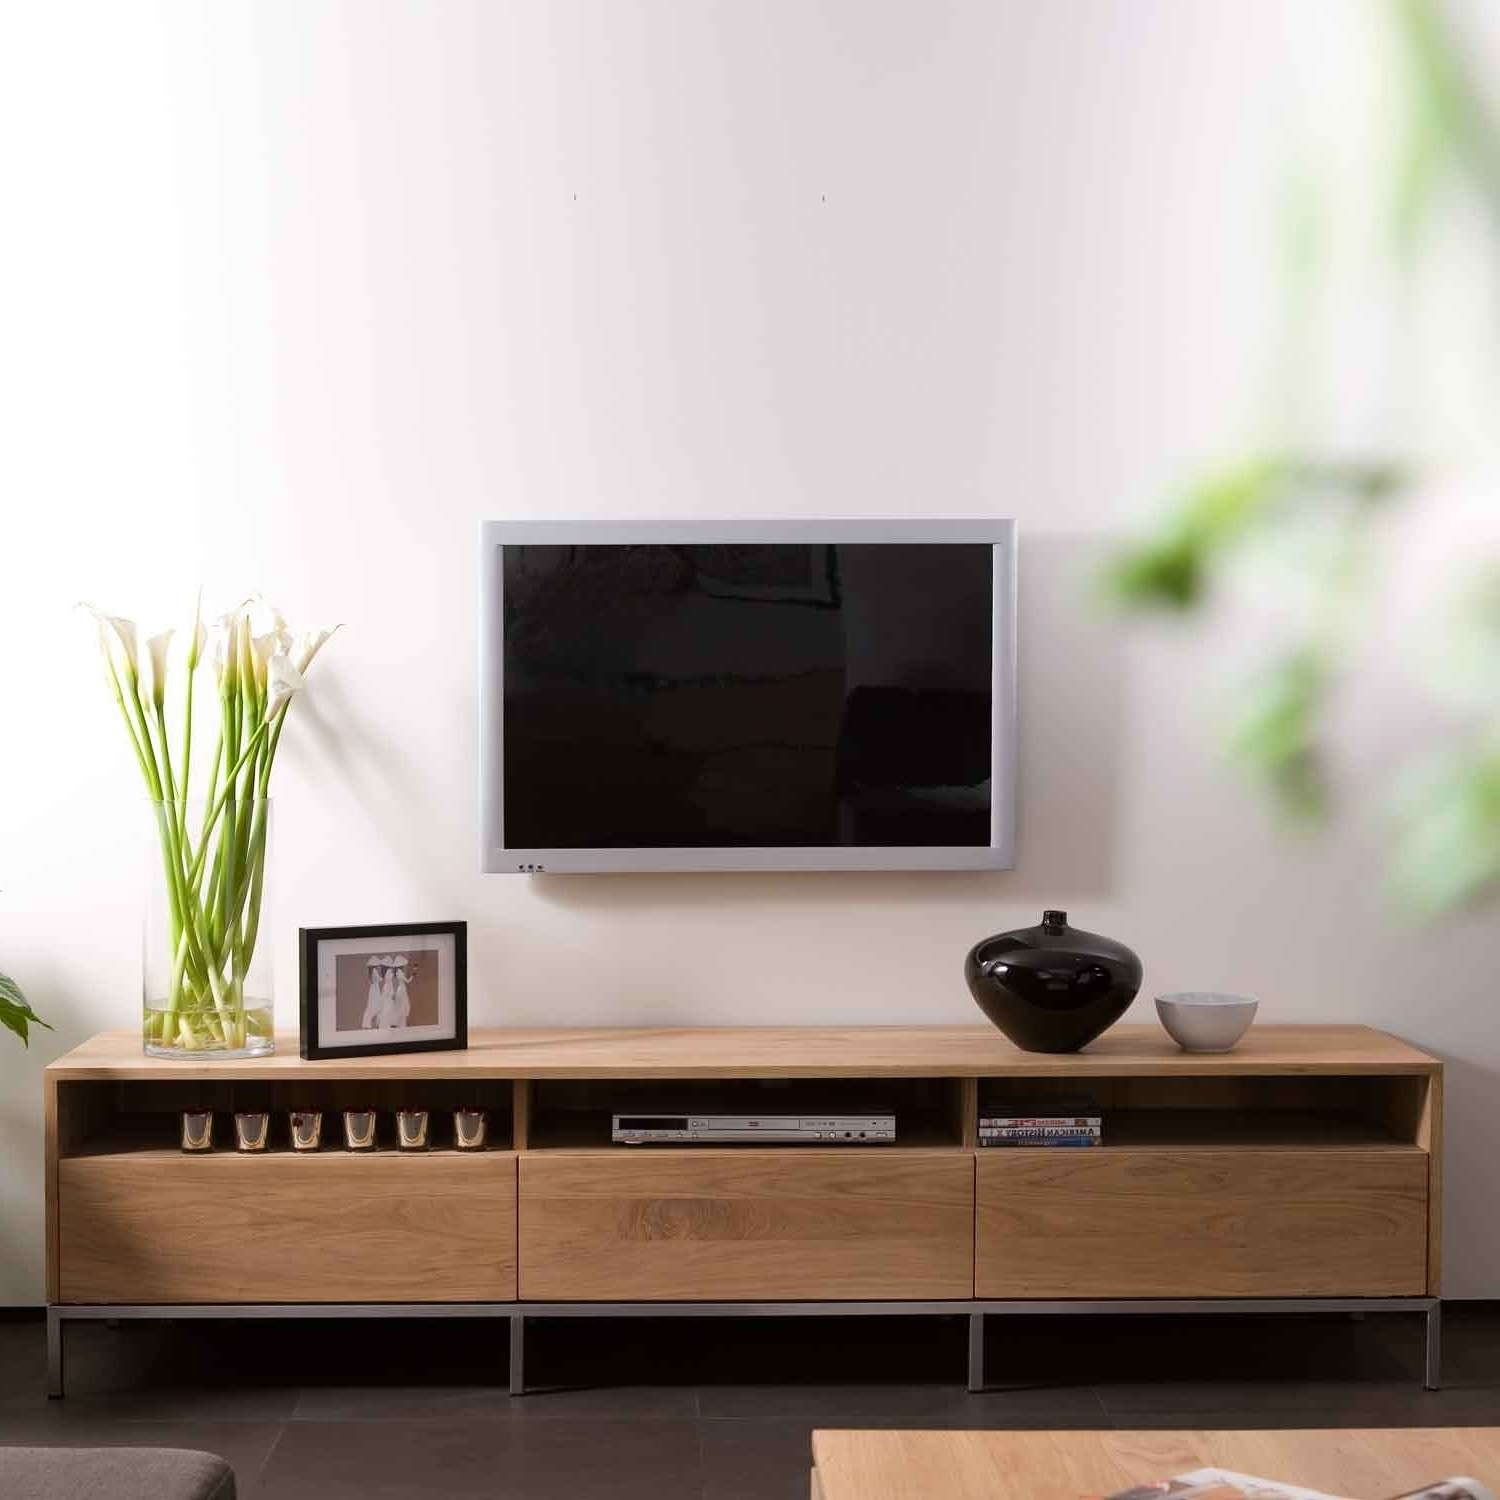 Ethnicraft Ligna Oak Tv Units | Solid Wood Furniture Throughout Contemporary Oak Tv Stands (View 2 of 15)